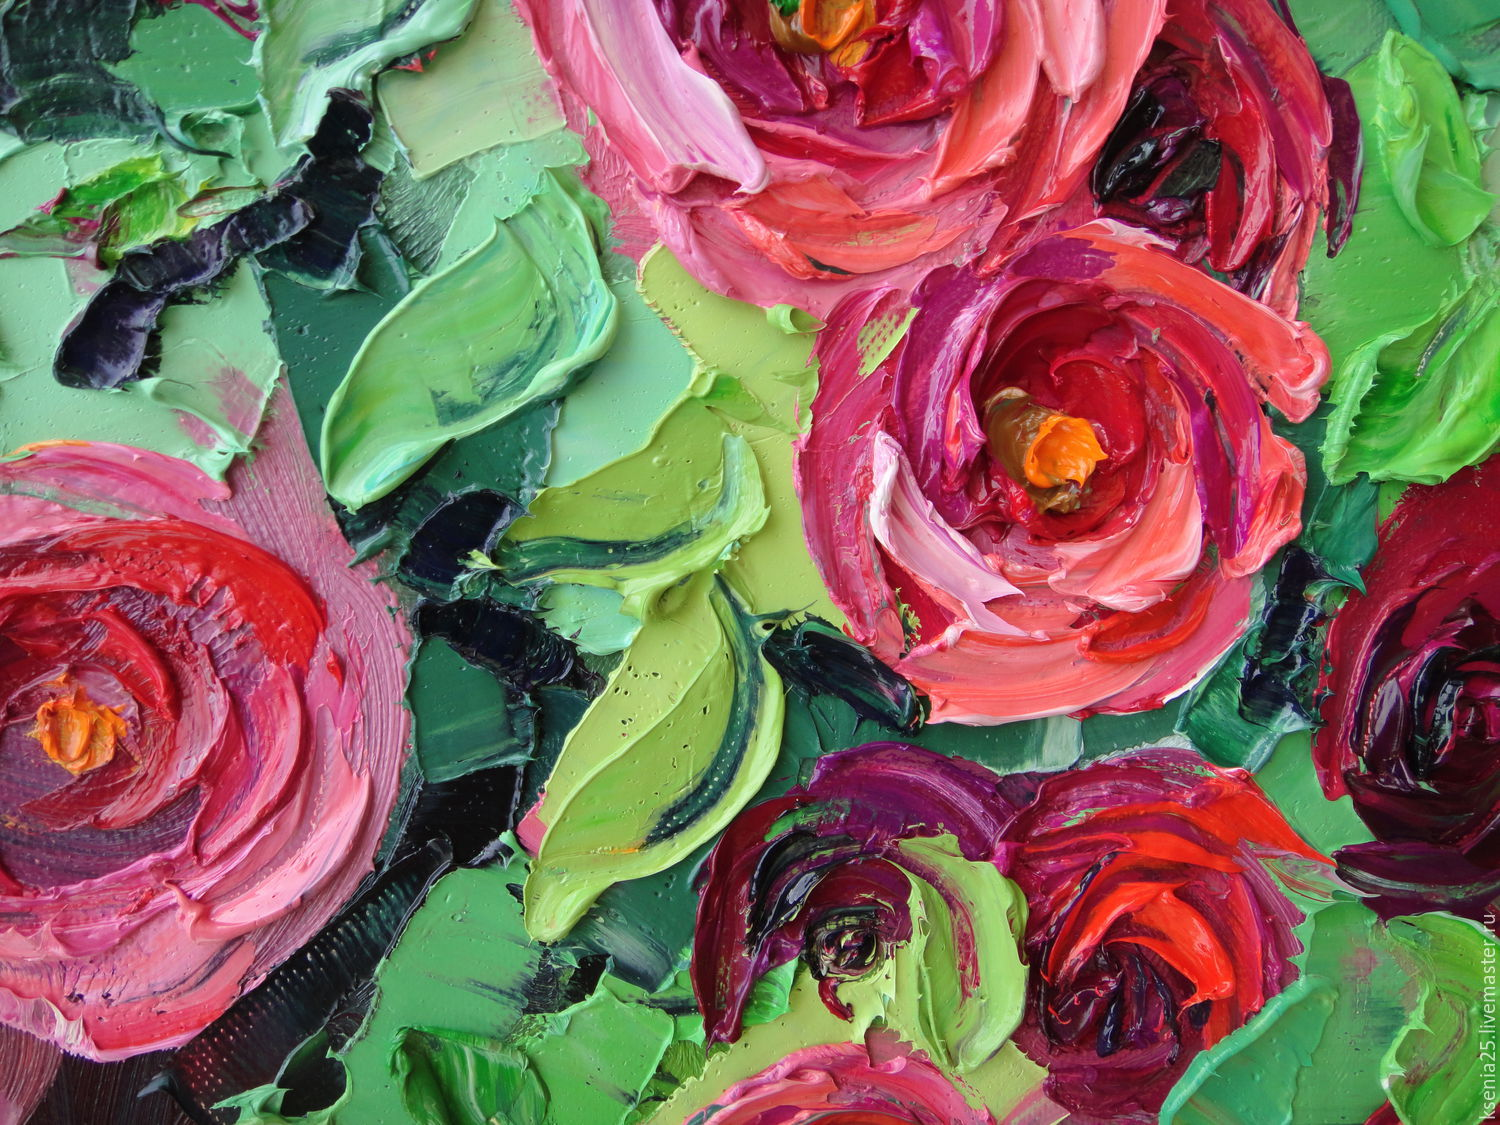 Oil painting Red roses - shop online on Livemaster with shipping - 9FXJPCOM   Rossosh